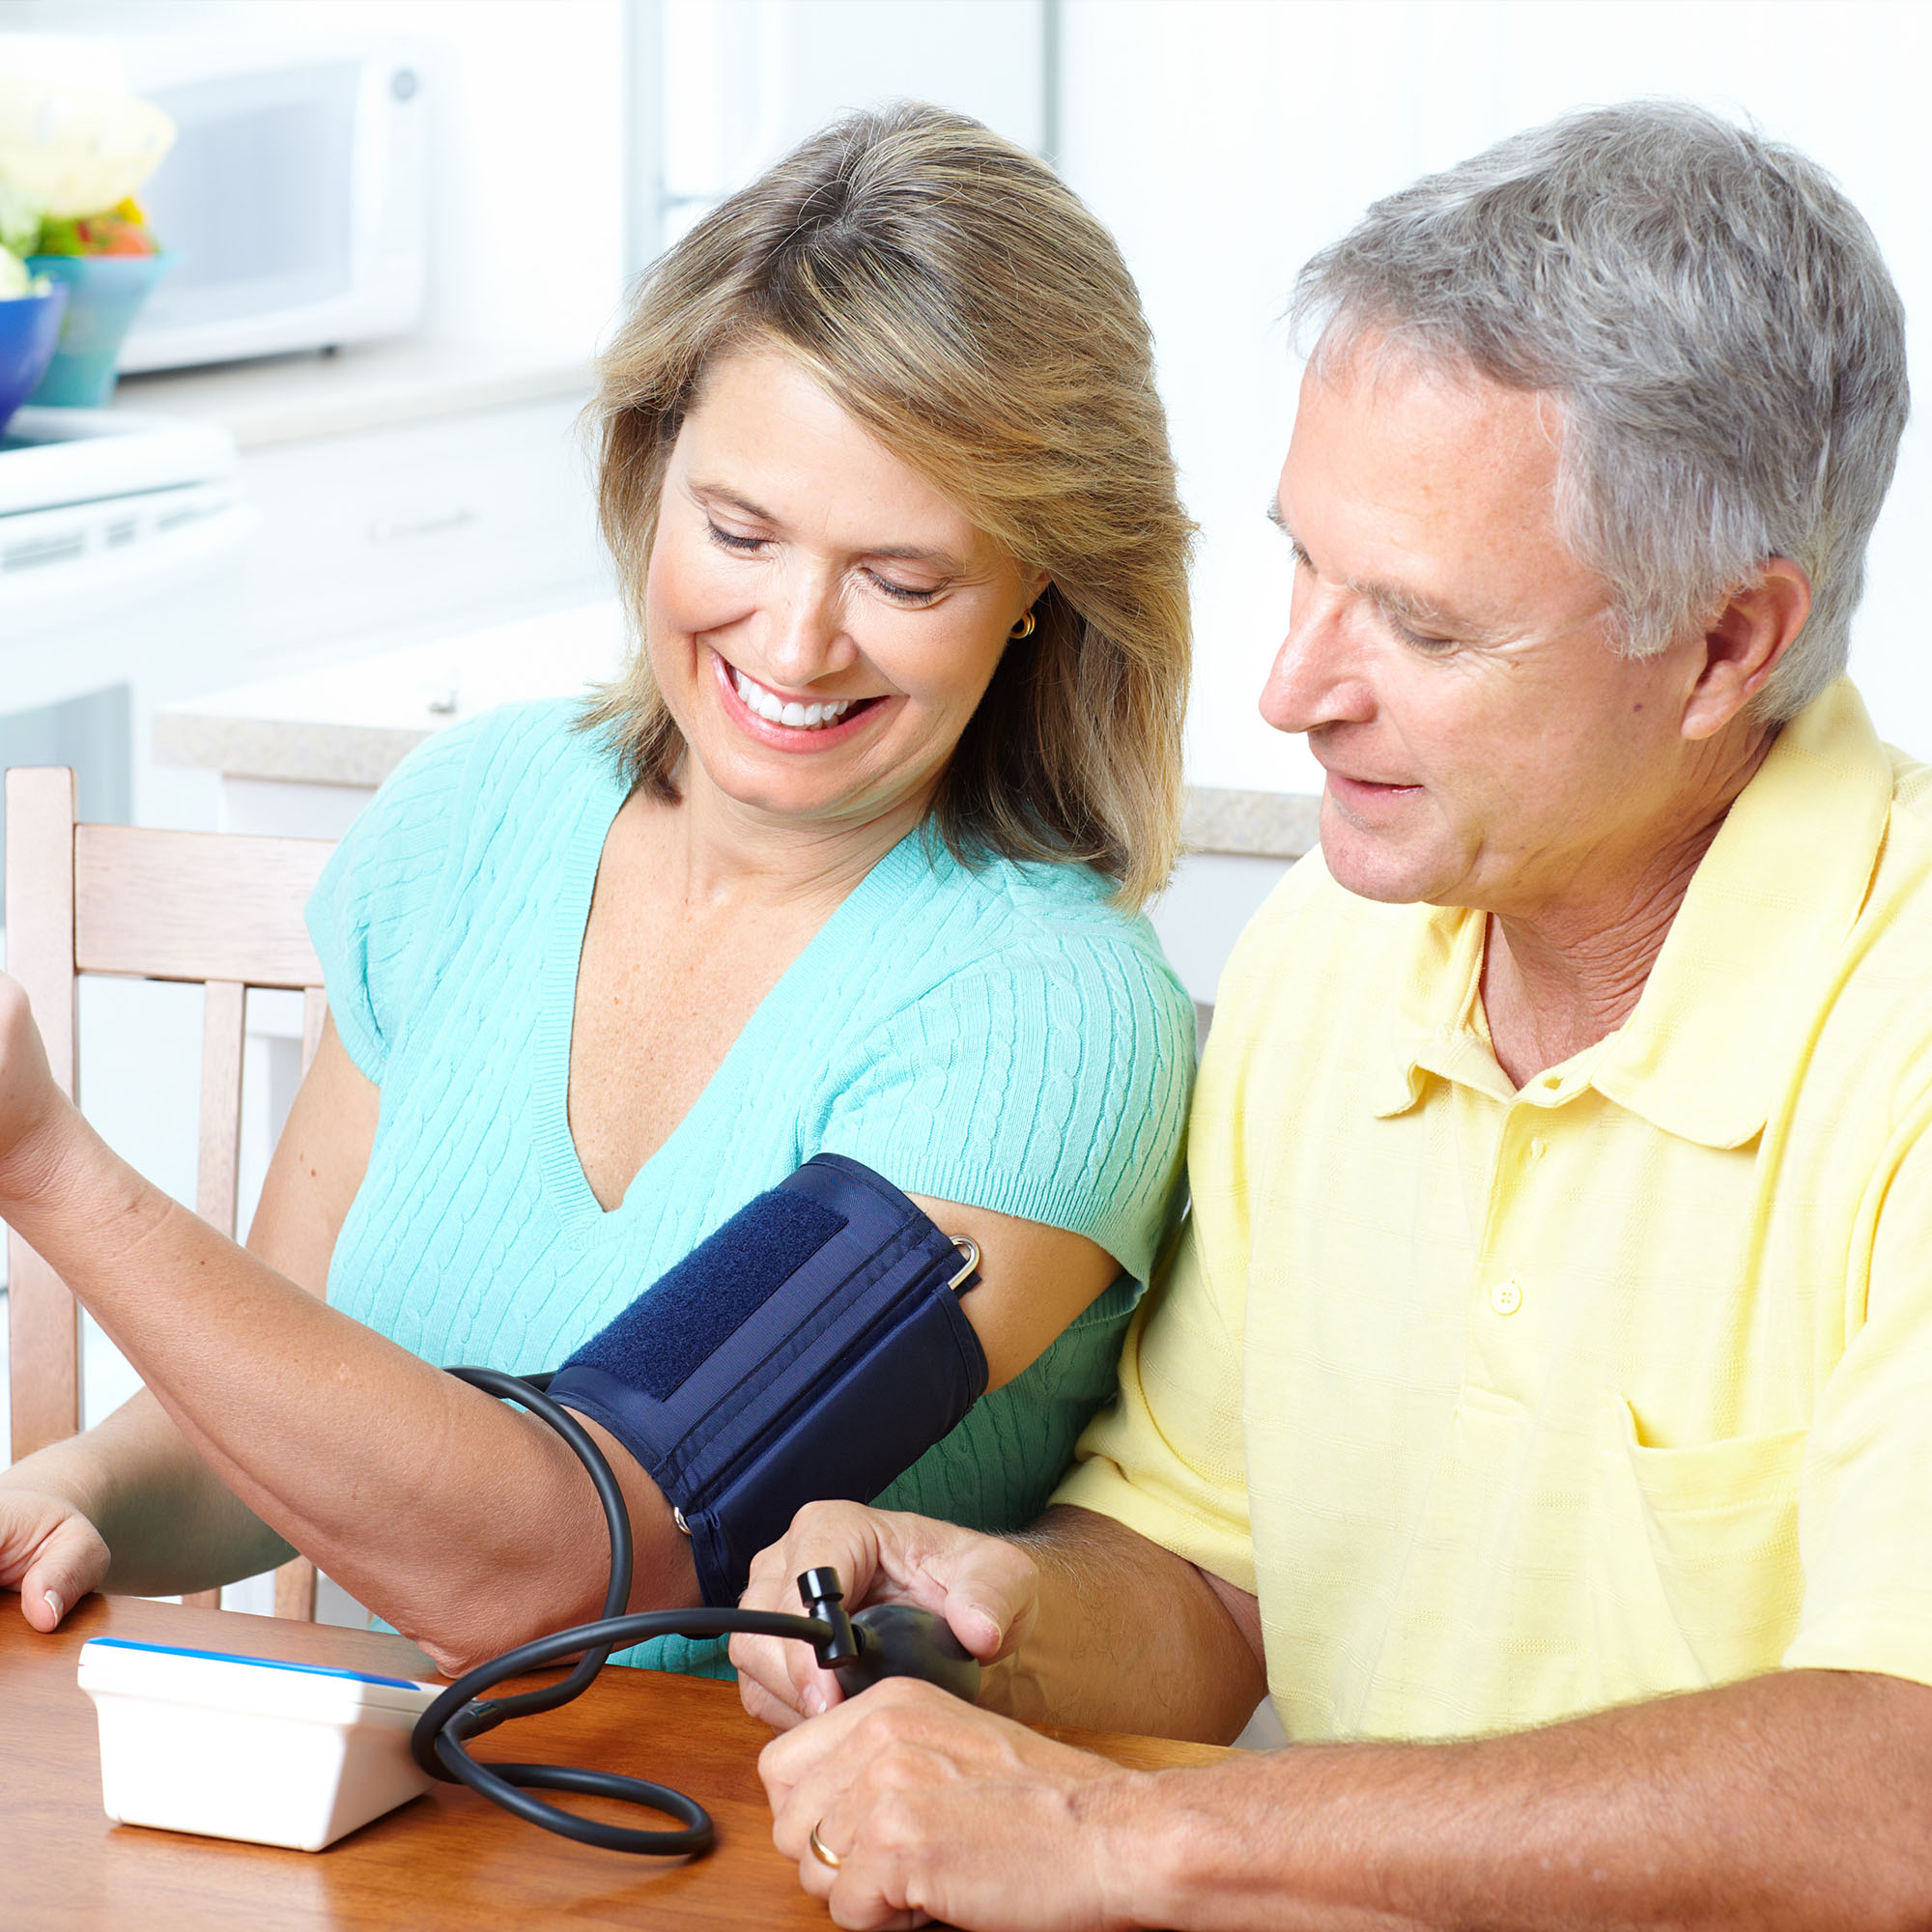 Two patients enjoying the comfort and mobility of a Blood pressure cuff provided by MedekRPM.